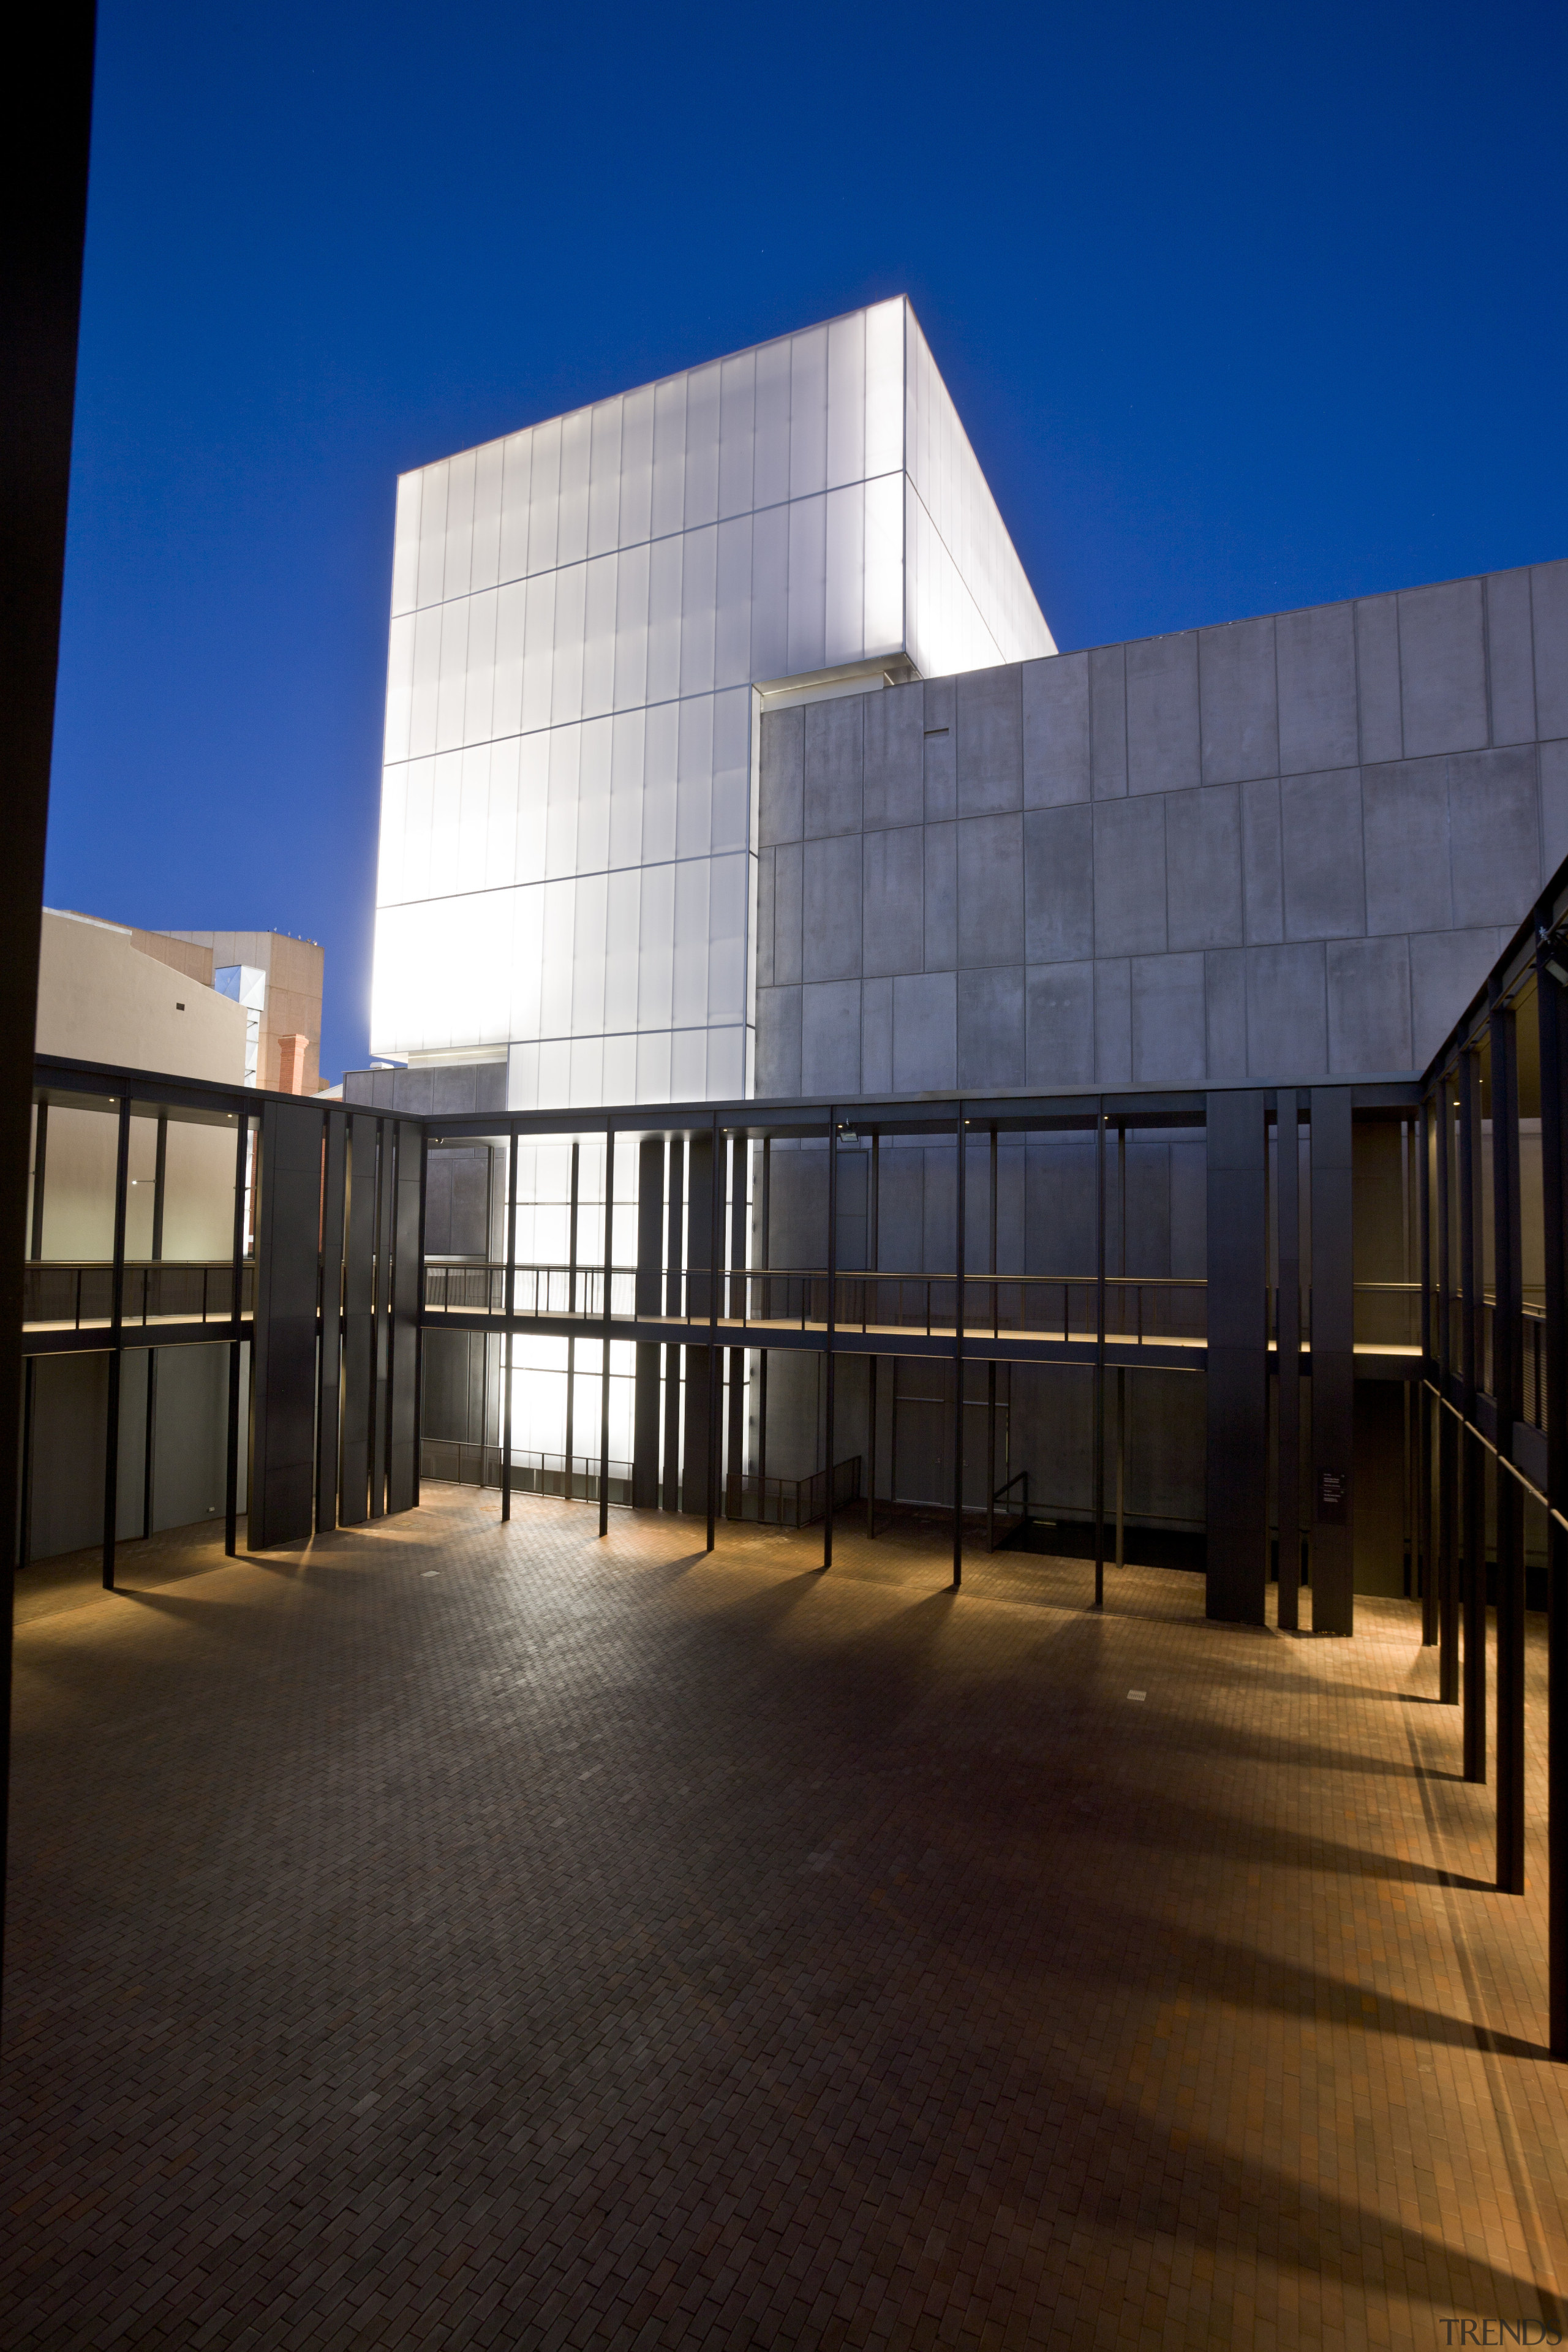 This is the Perth State Theatre, designed by architecture, building, commercial building, corporate headquarters, daylighting, daytime, evening, facade, headquarters, house, line, reflection, sky, structure, tourist attraction, window, black, blue